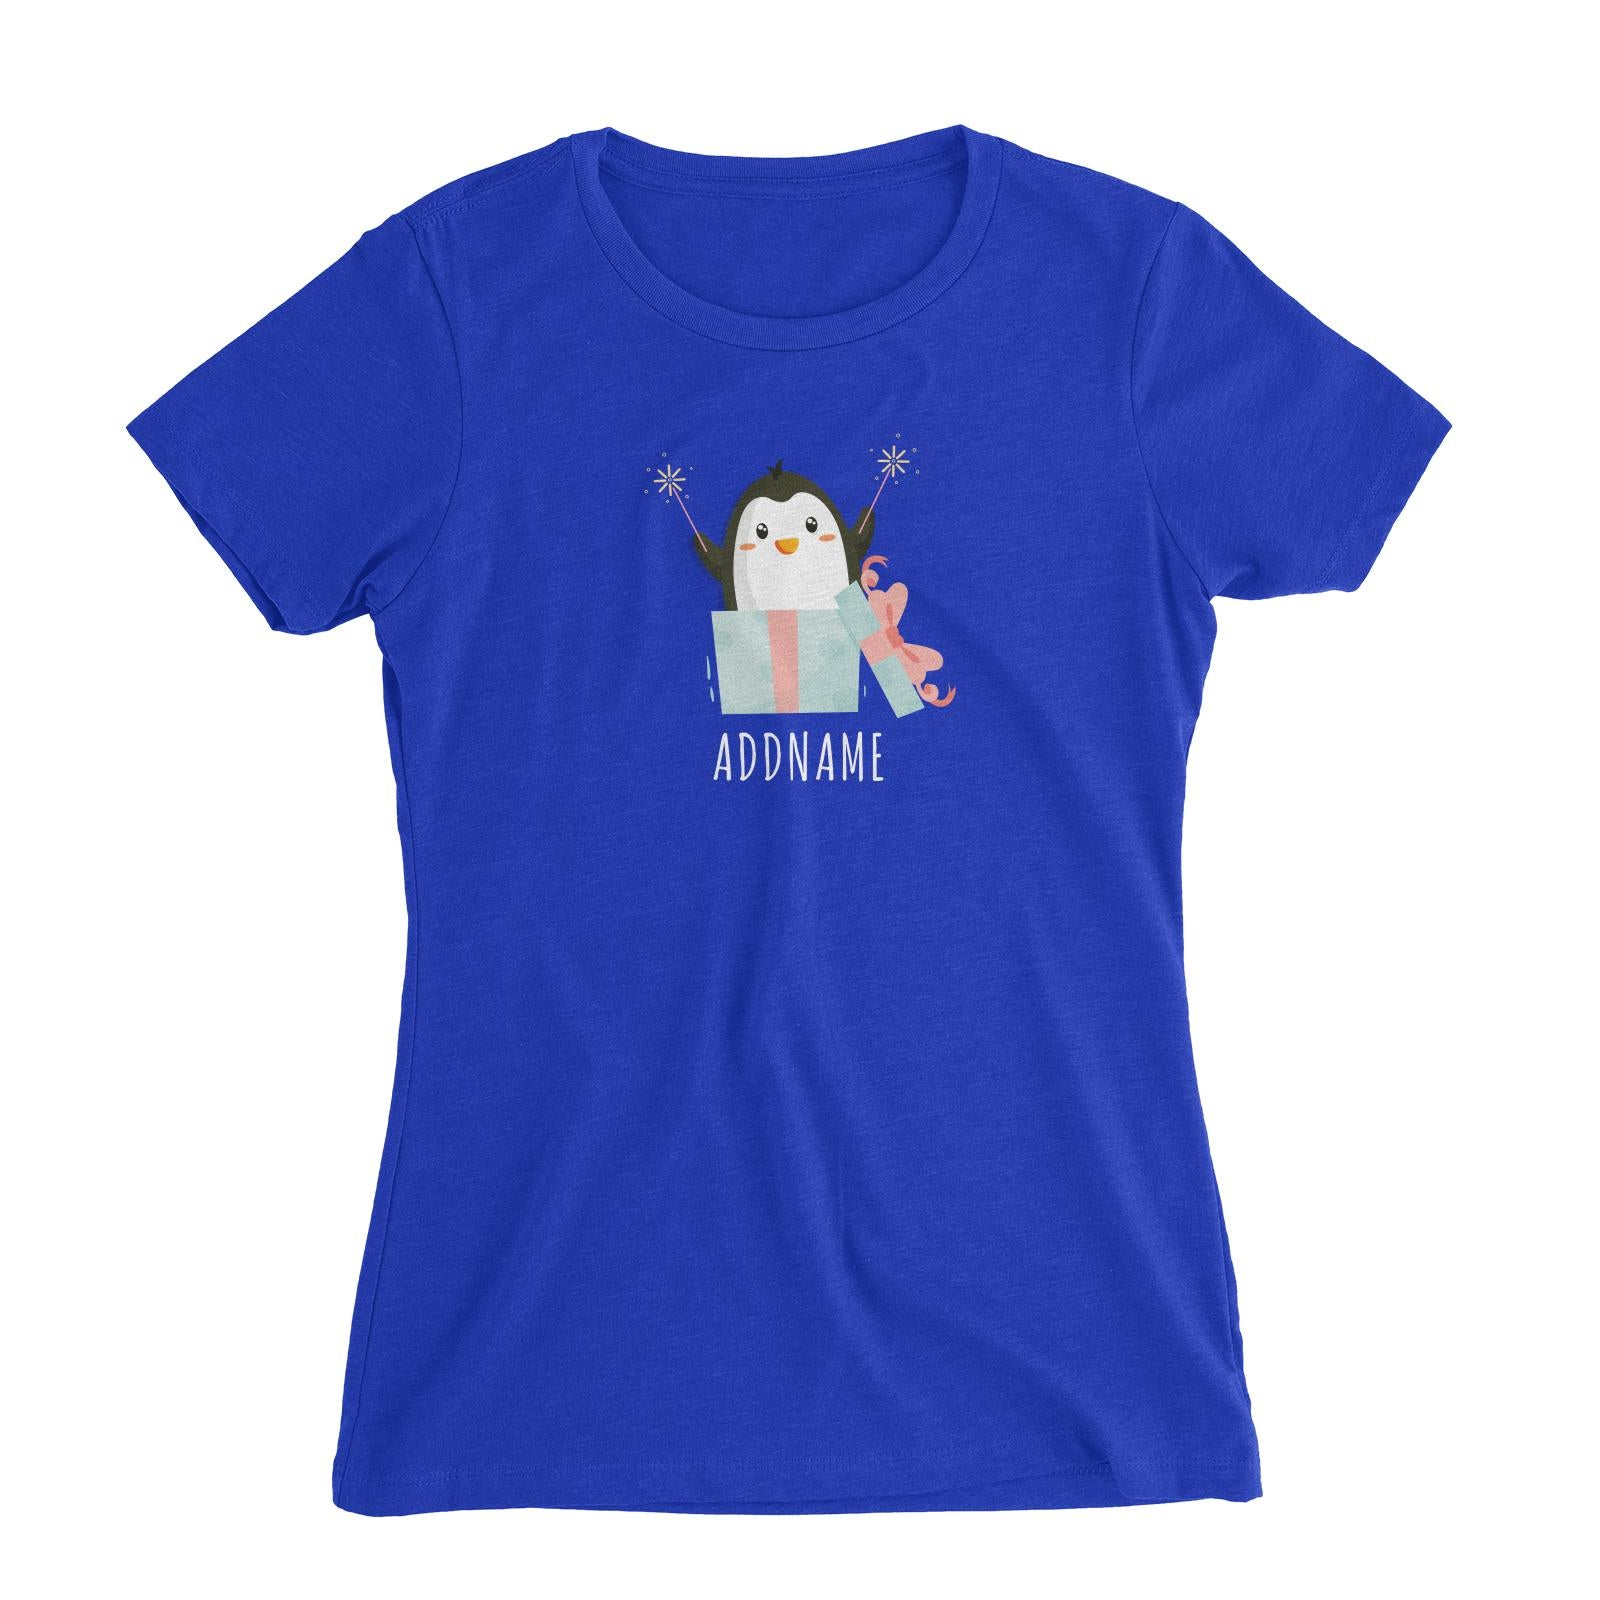 Birthday Cute Penguin Taking Fireworks In Present Box Addname Women's Slim Fit T-Shirt